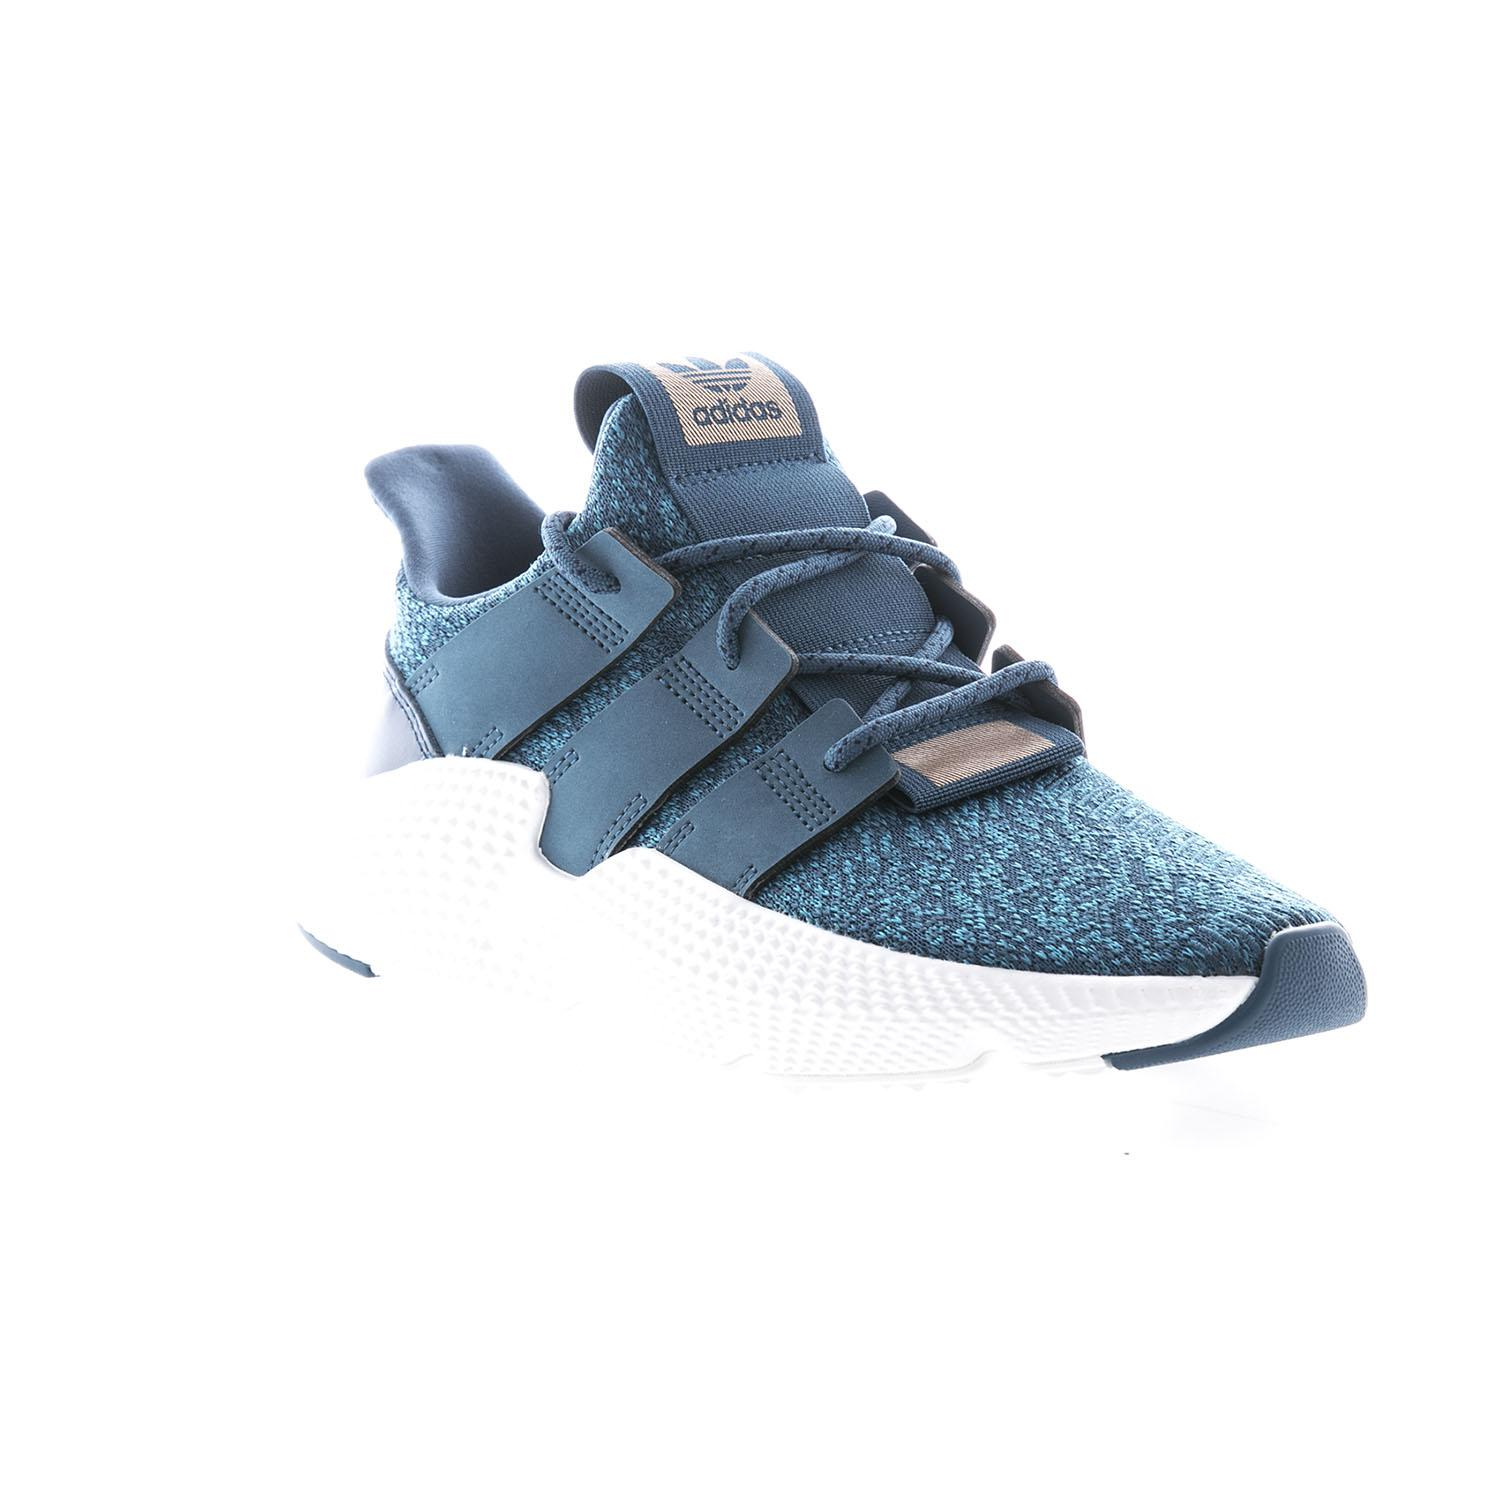 e82b966ae7b1 Adidas Prophere Trainers in Blue - Lyst